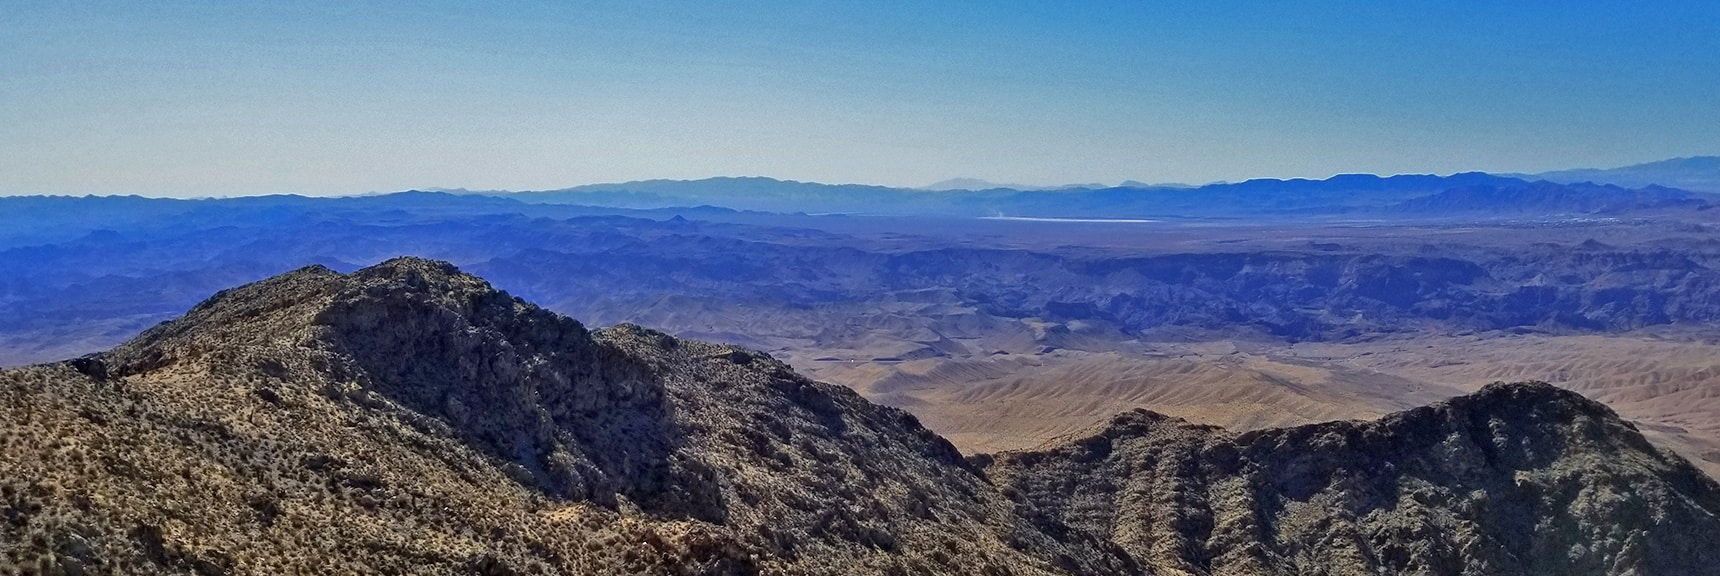 Southern View from Mt Wilson Western Approach Ridge | Mt Wilson, Black Mountains, Arizona, Lake Mead National Recreation Area